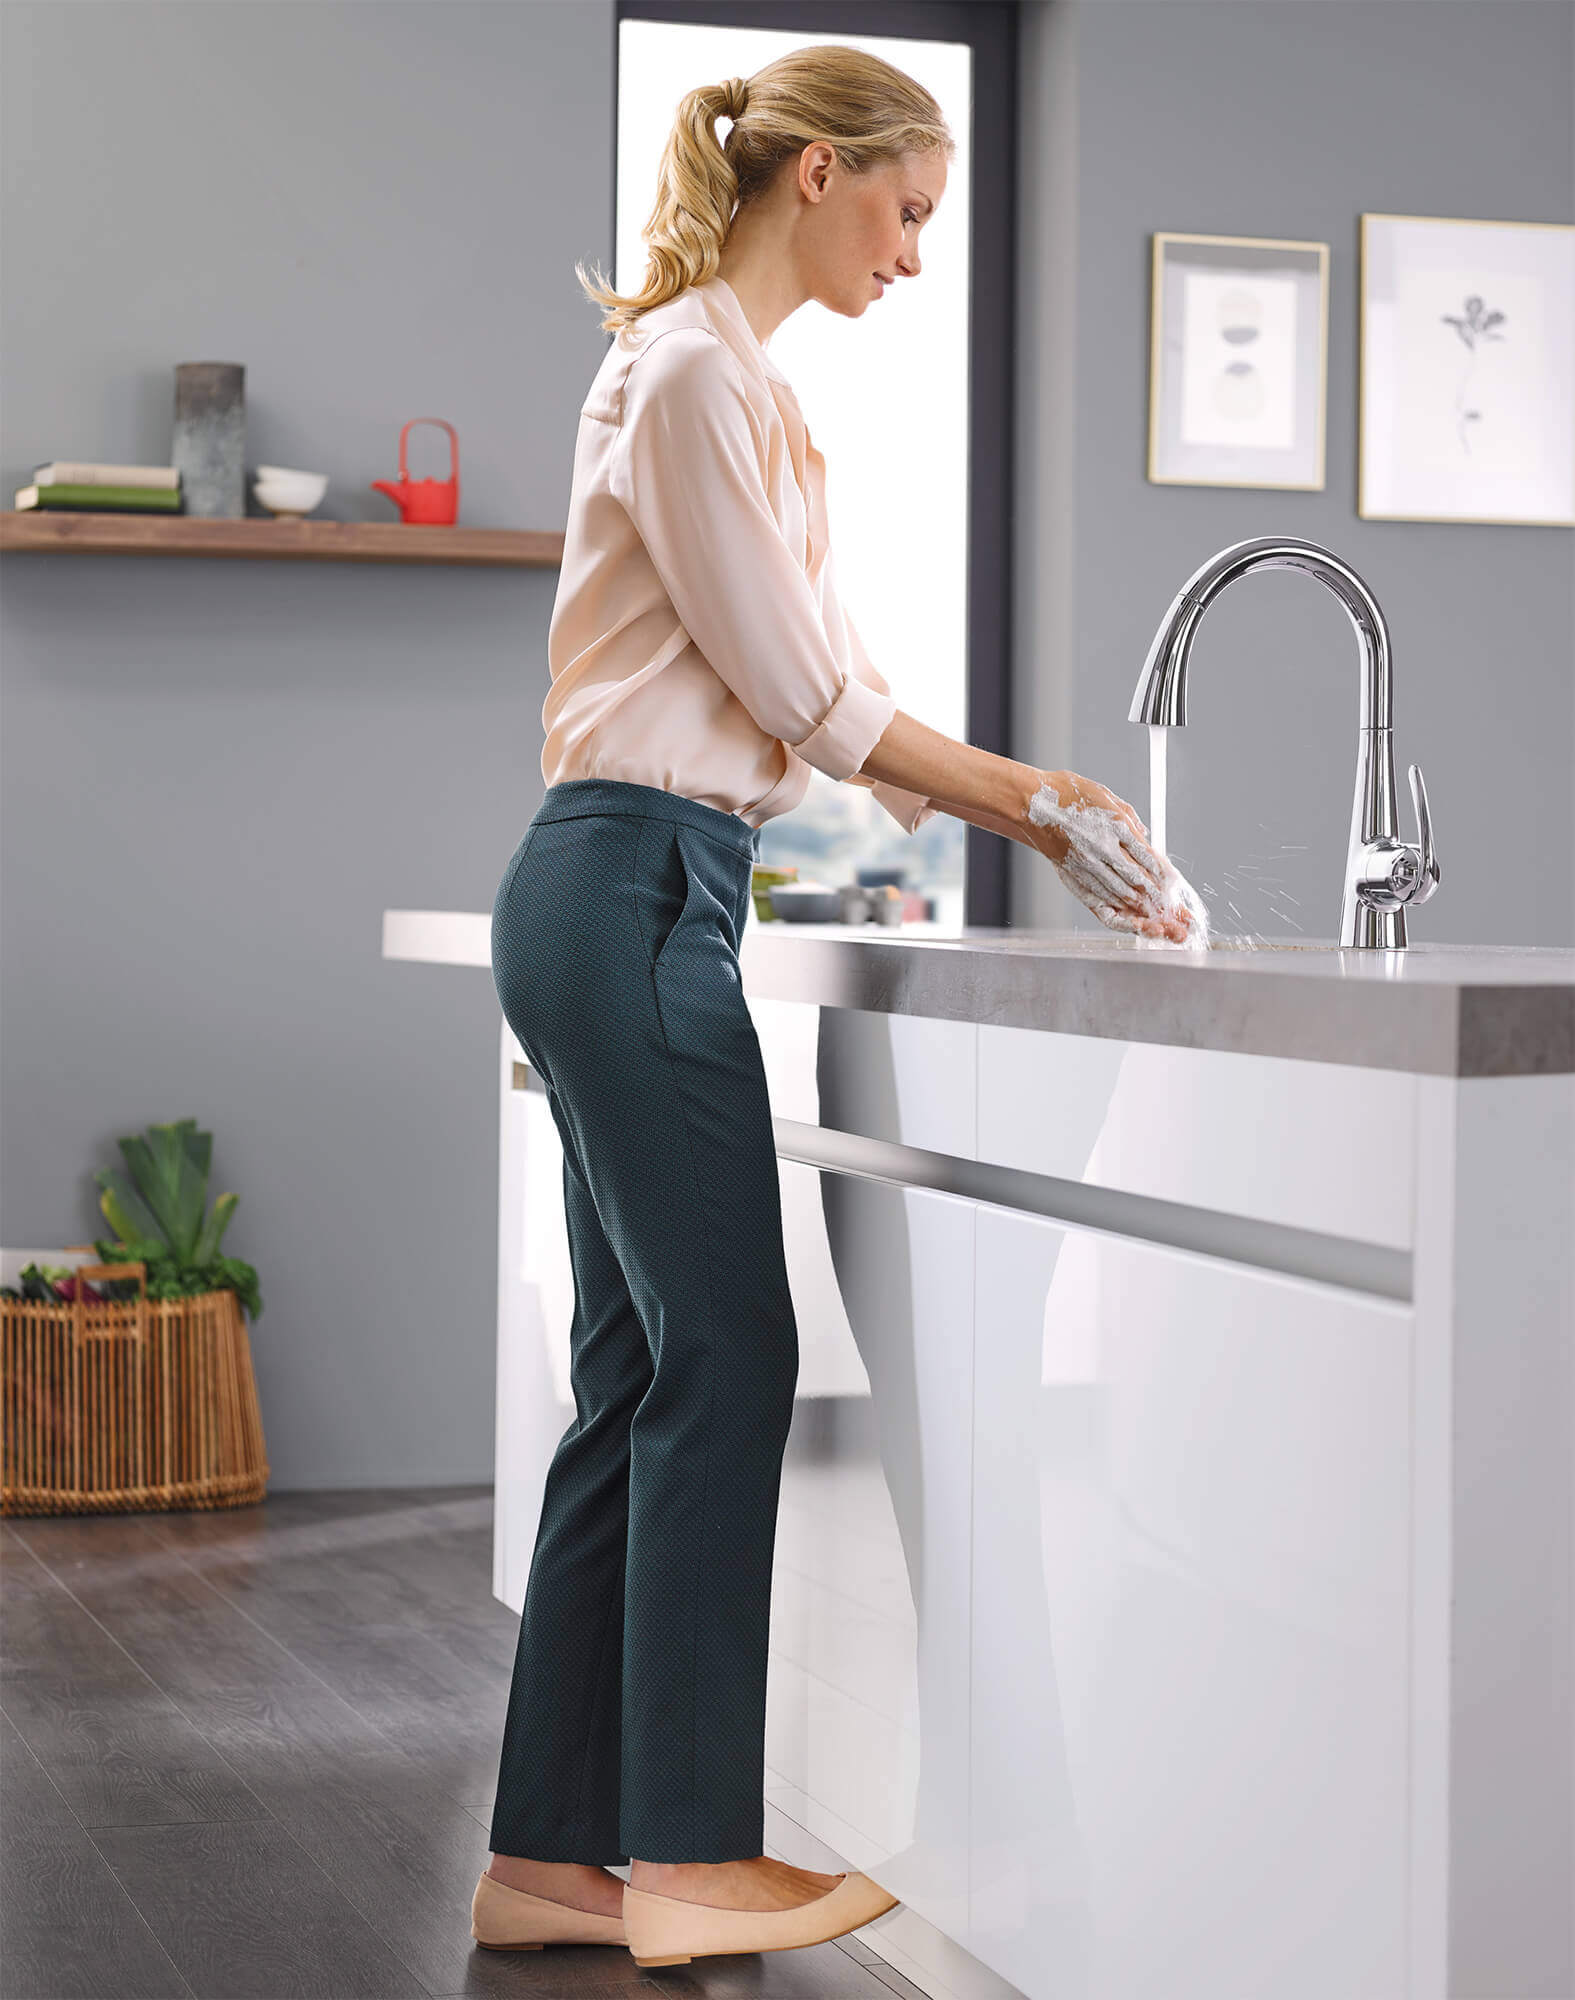 Footcontrol Kitchen Faucet by GROHE